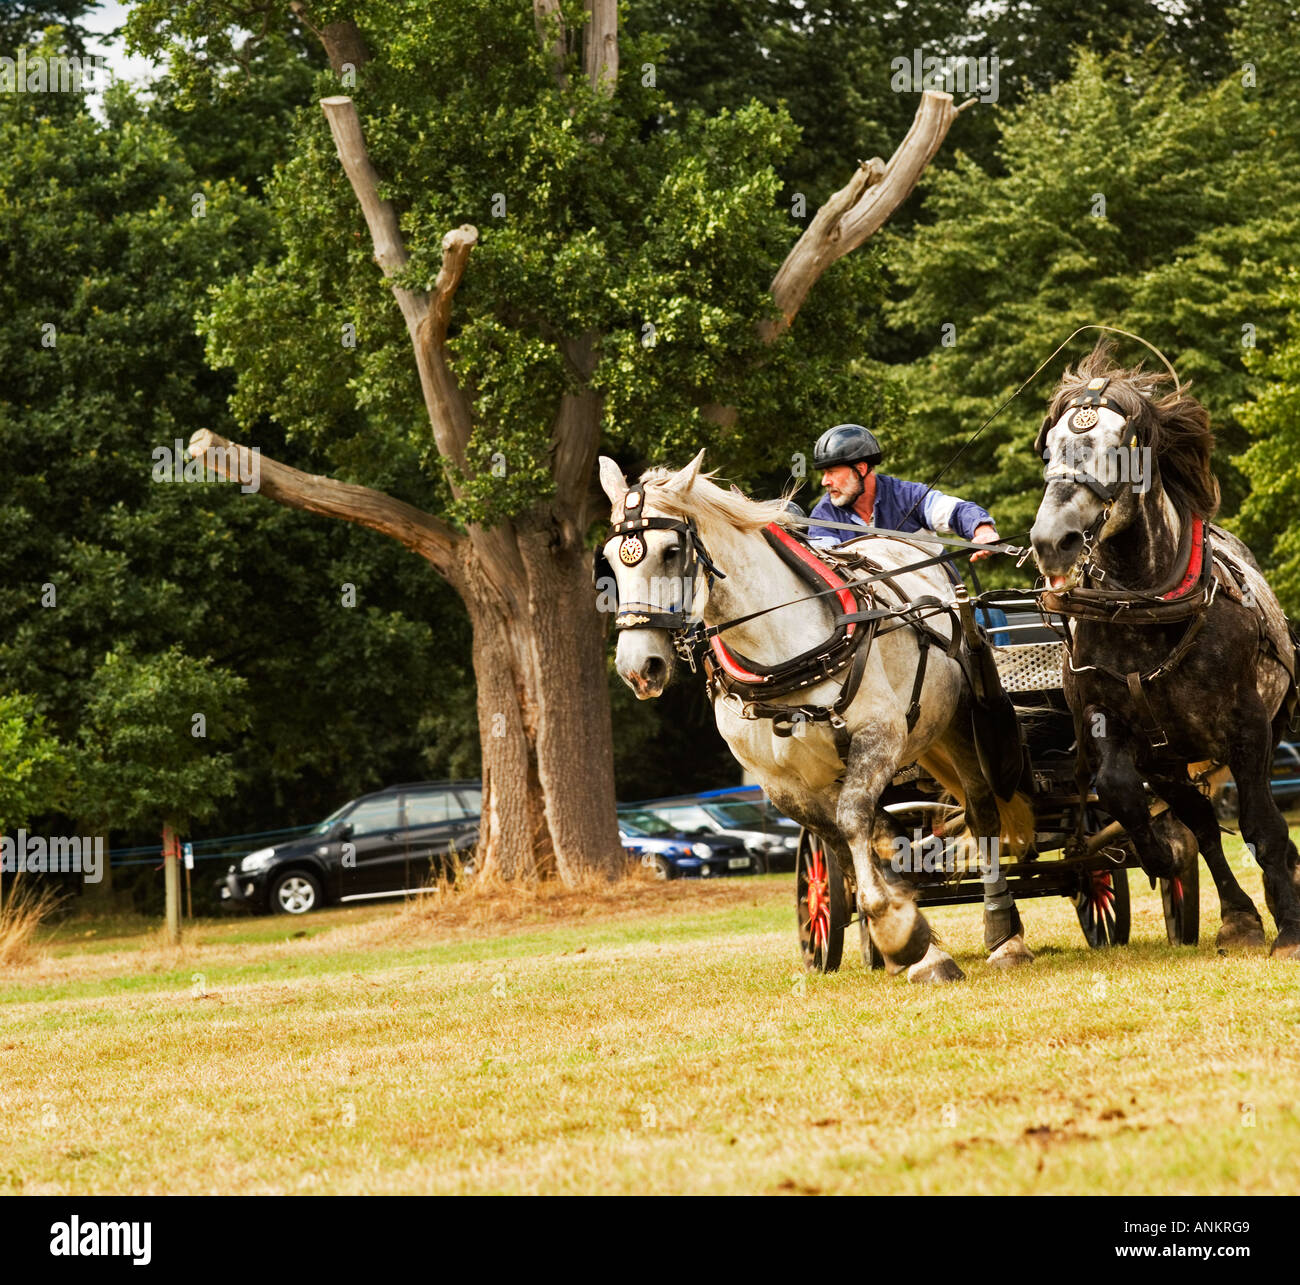 Hatfield Country Show England - Stock Image